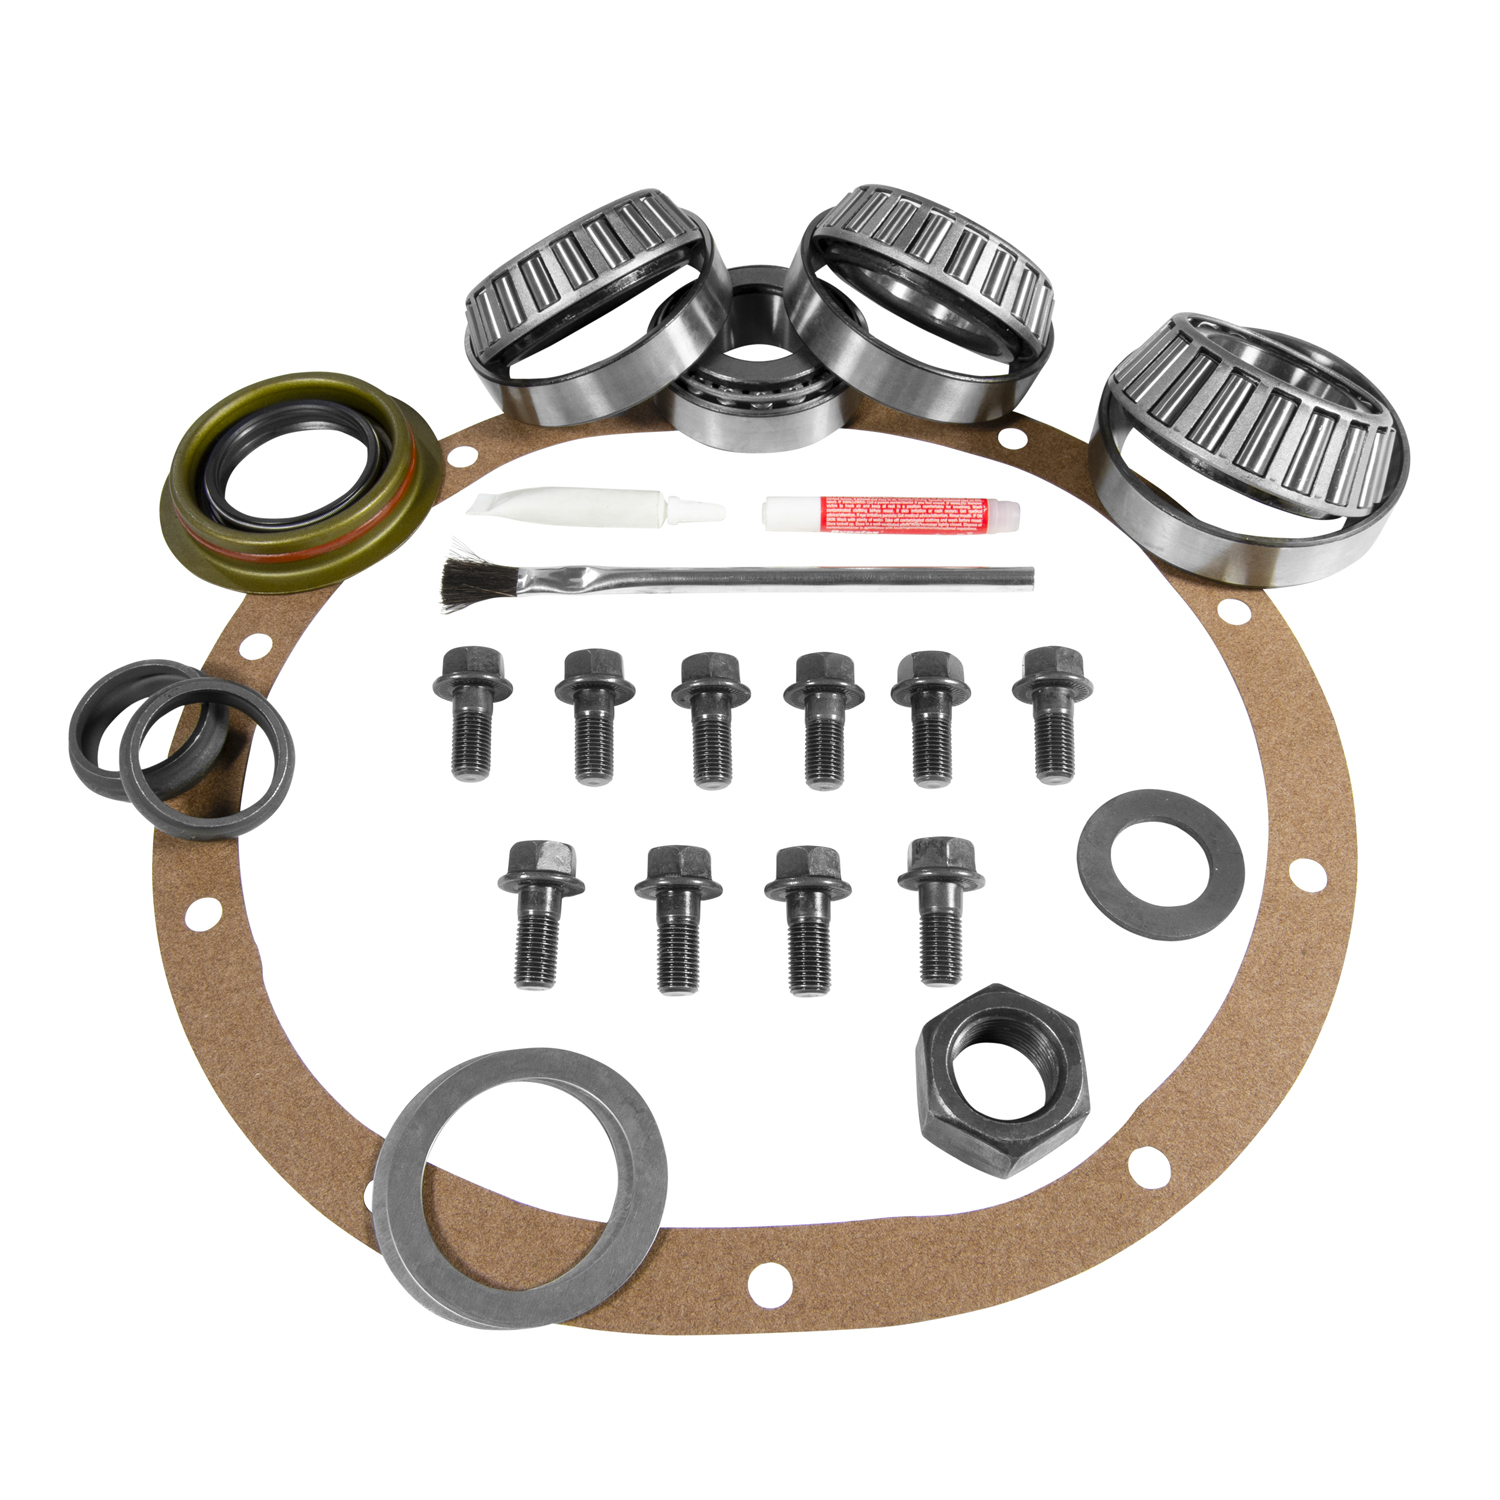 YK C8.25-A - Yukon Master Overhaul kit for Chrysler '70-'75 8.25